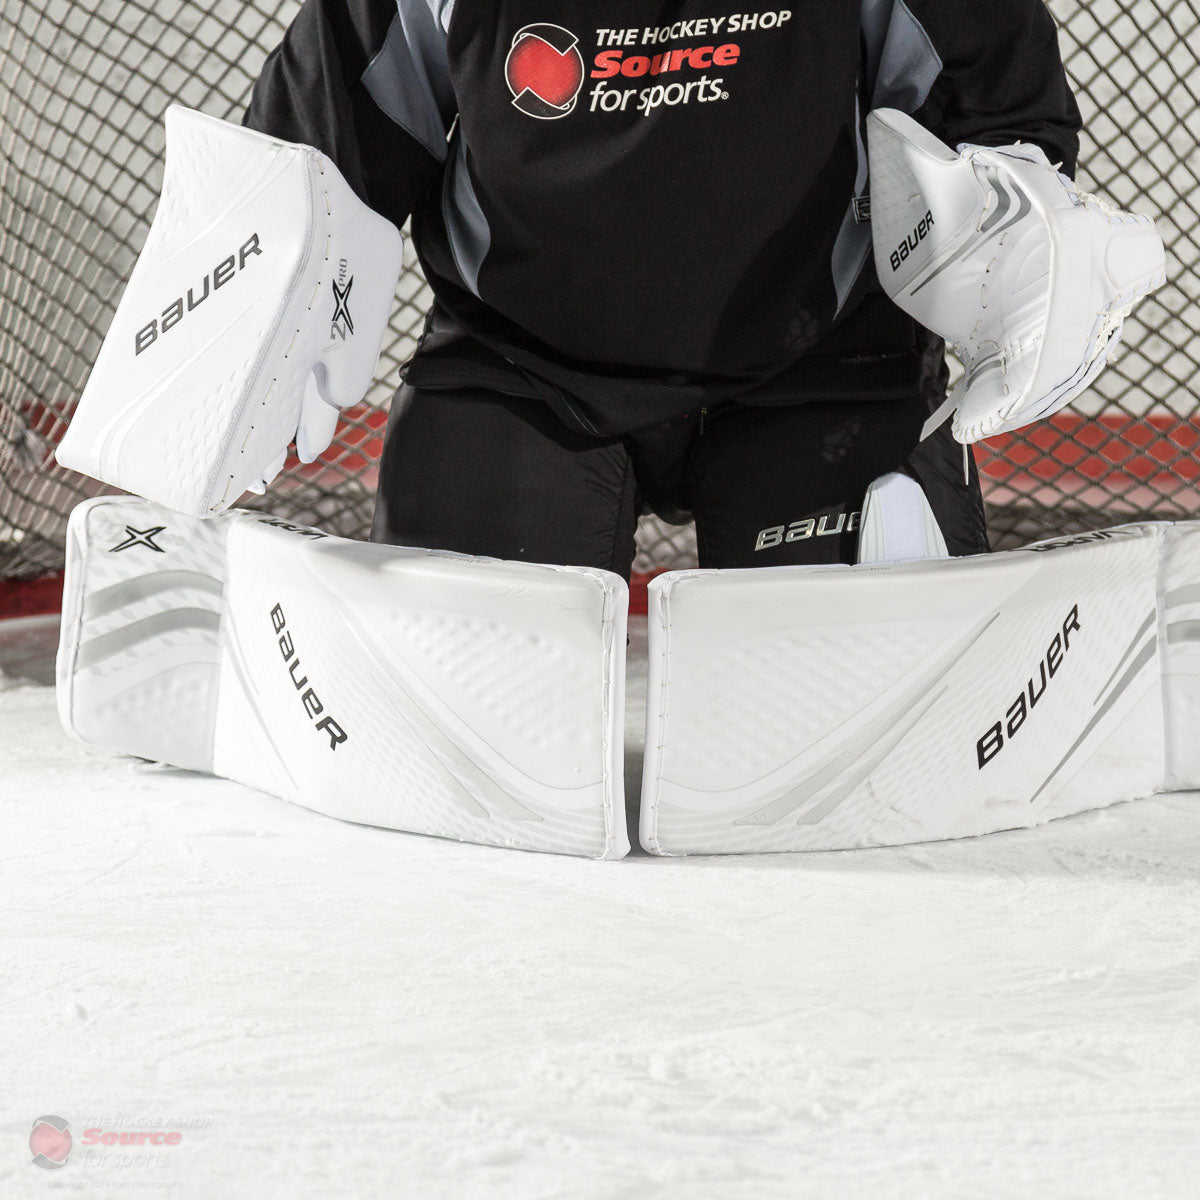 a69086b0bba Bauer Vapor 2X Pro Leg Pads Review – The Hockey Shop Source For Sports